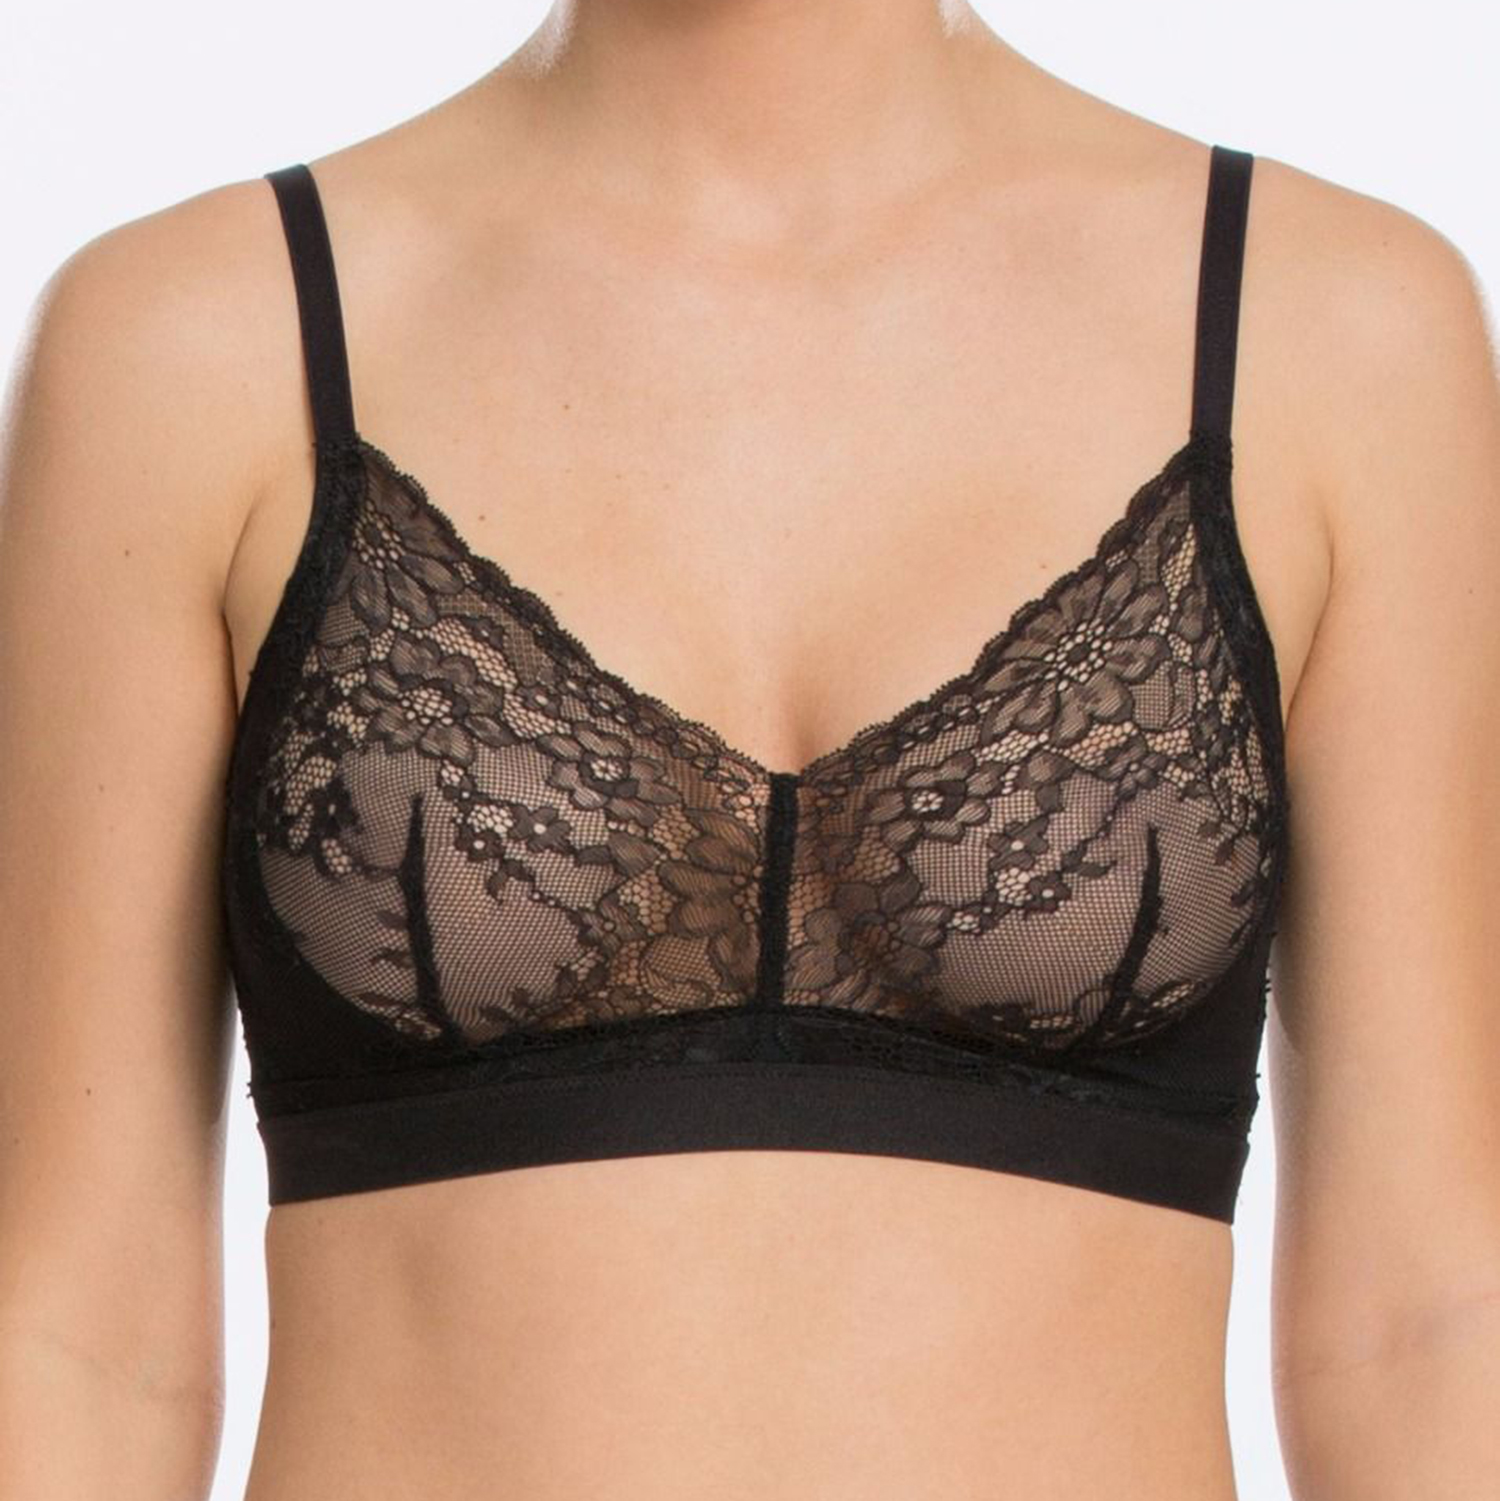 Supportive Lace Bralette Spotlight on Lace